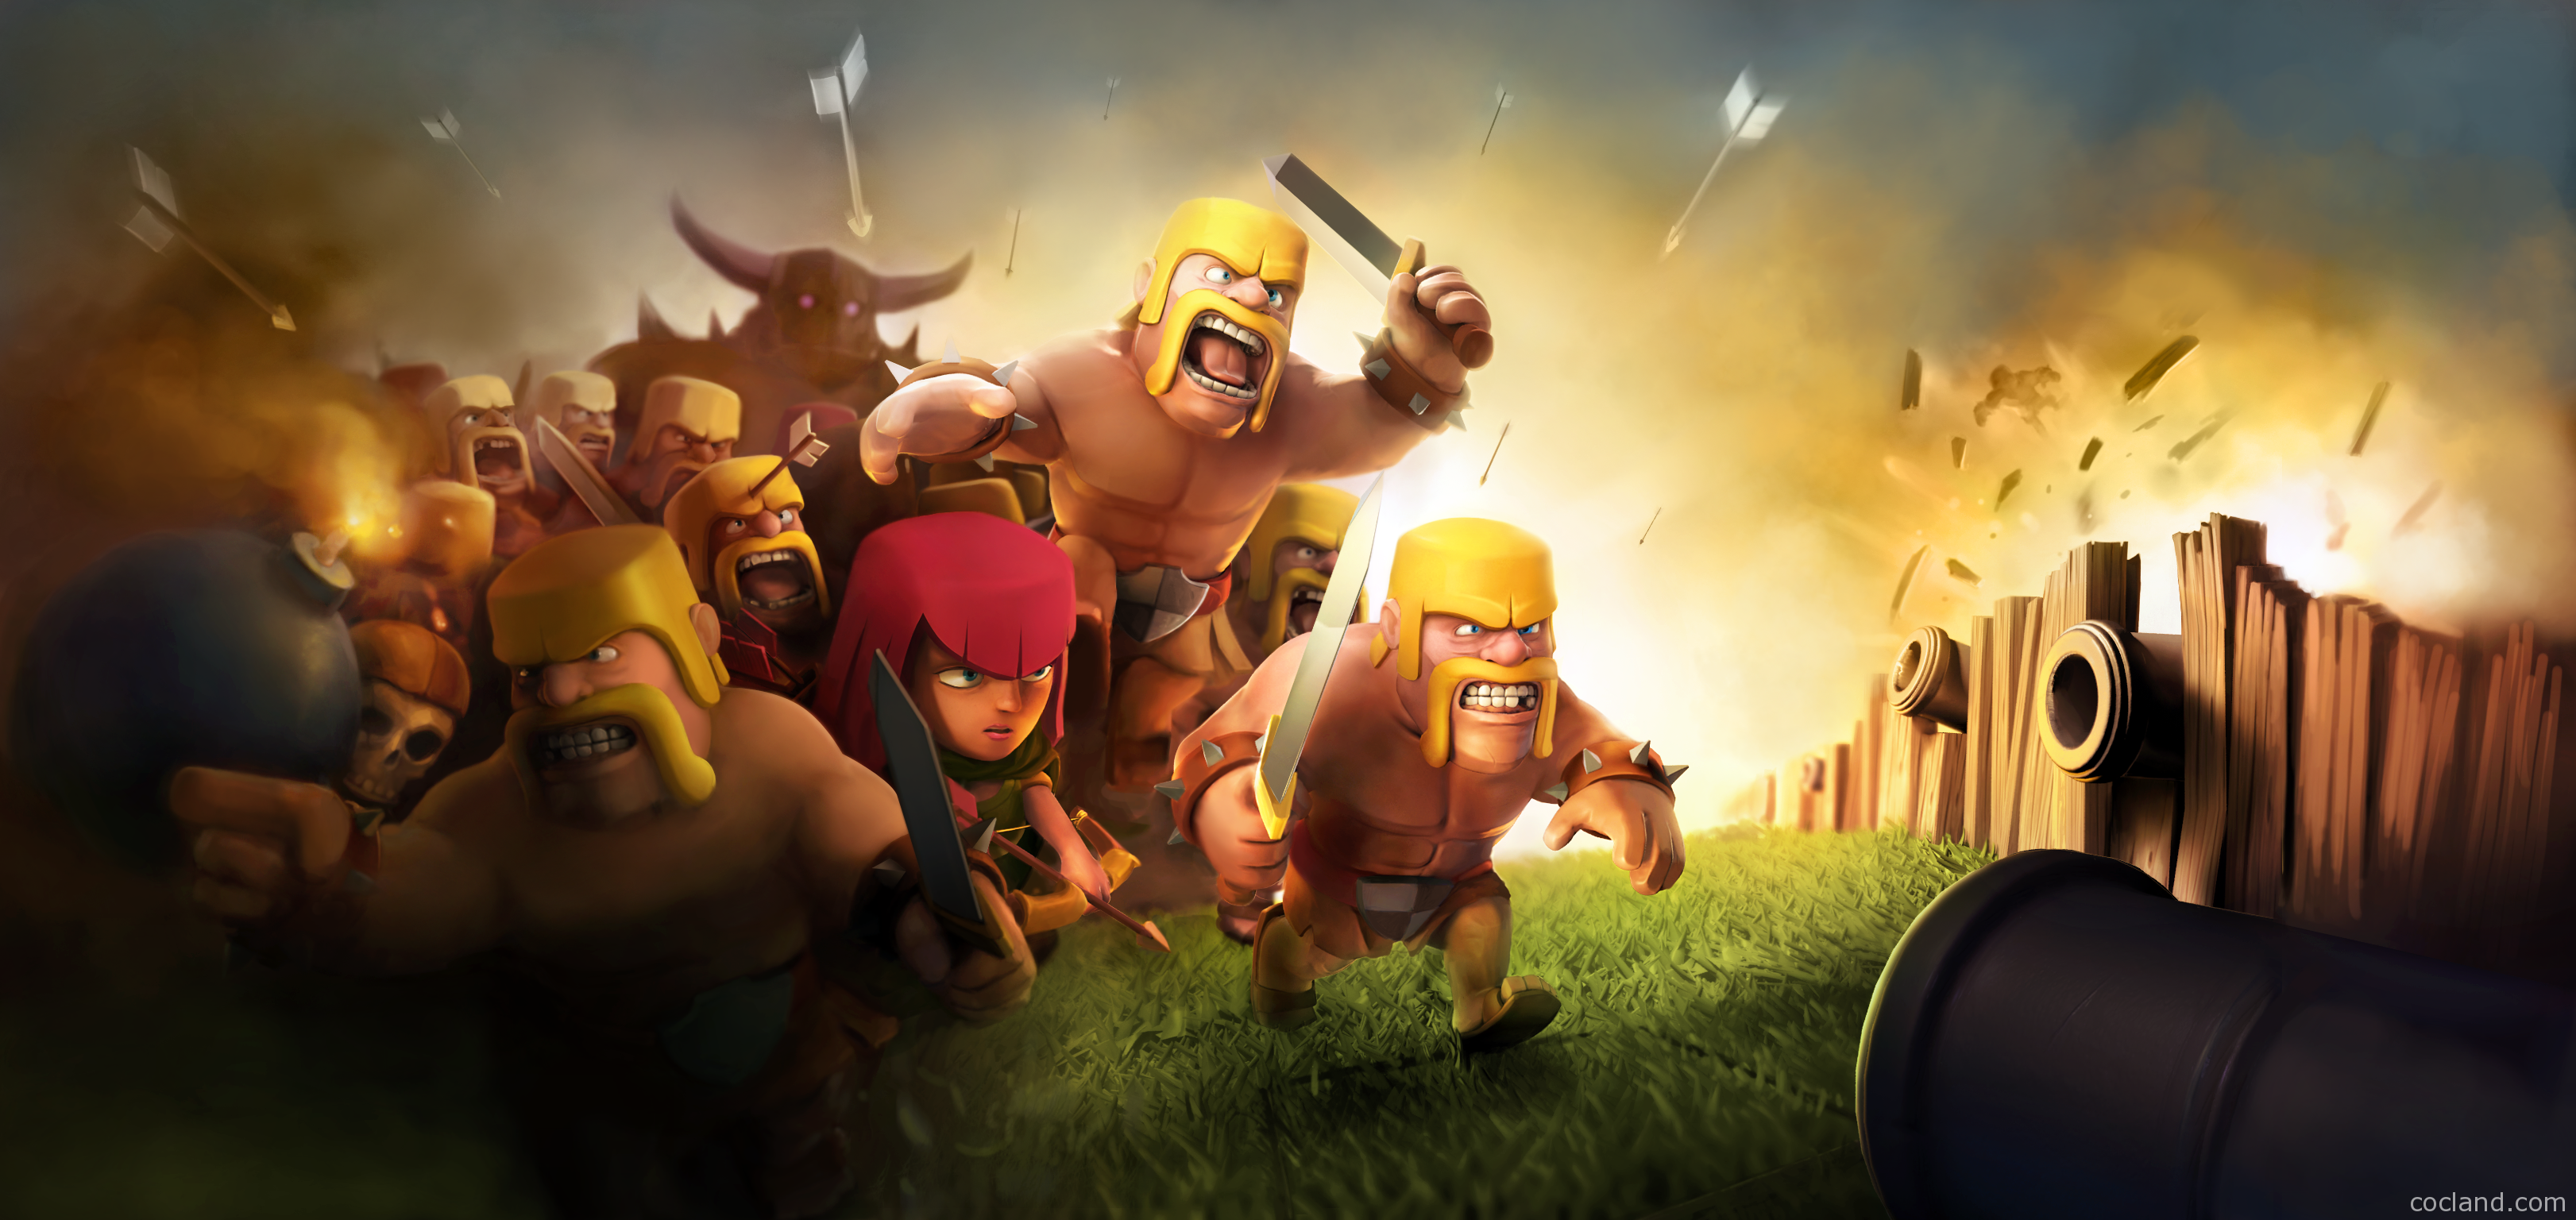 Clash of clans wallpapers high quality download free - Clash royale 2560x1440 ...